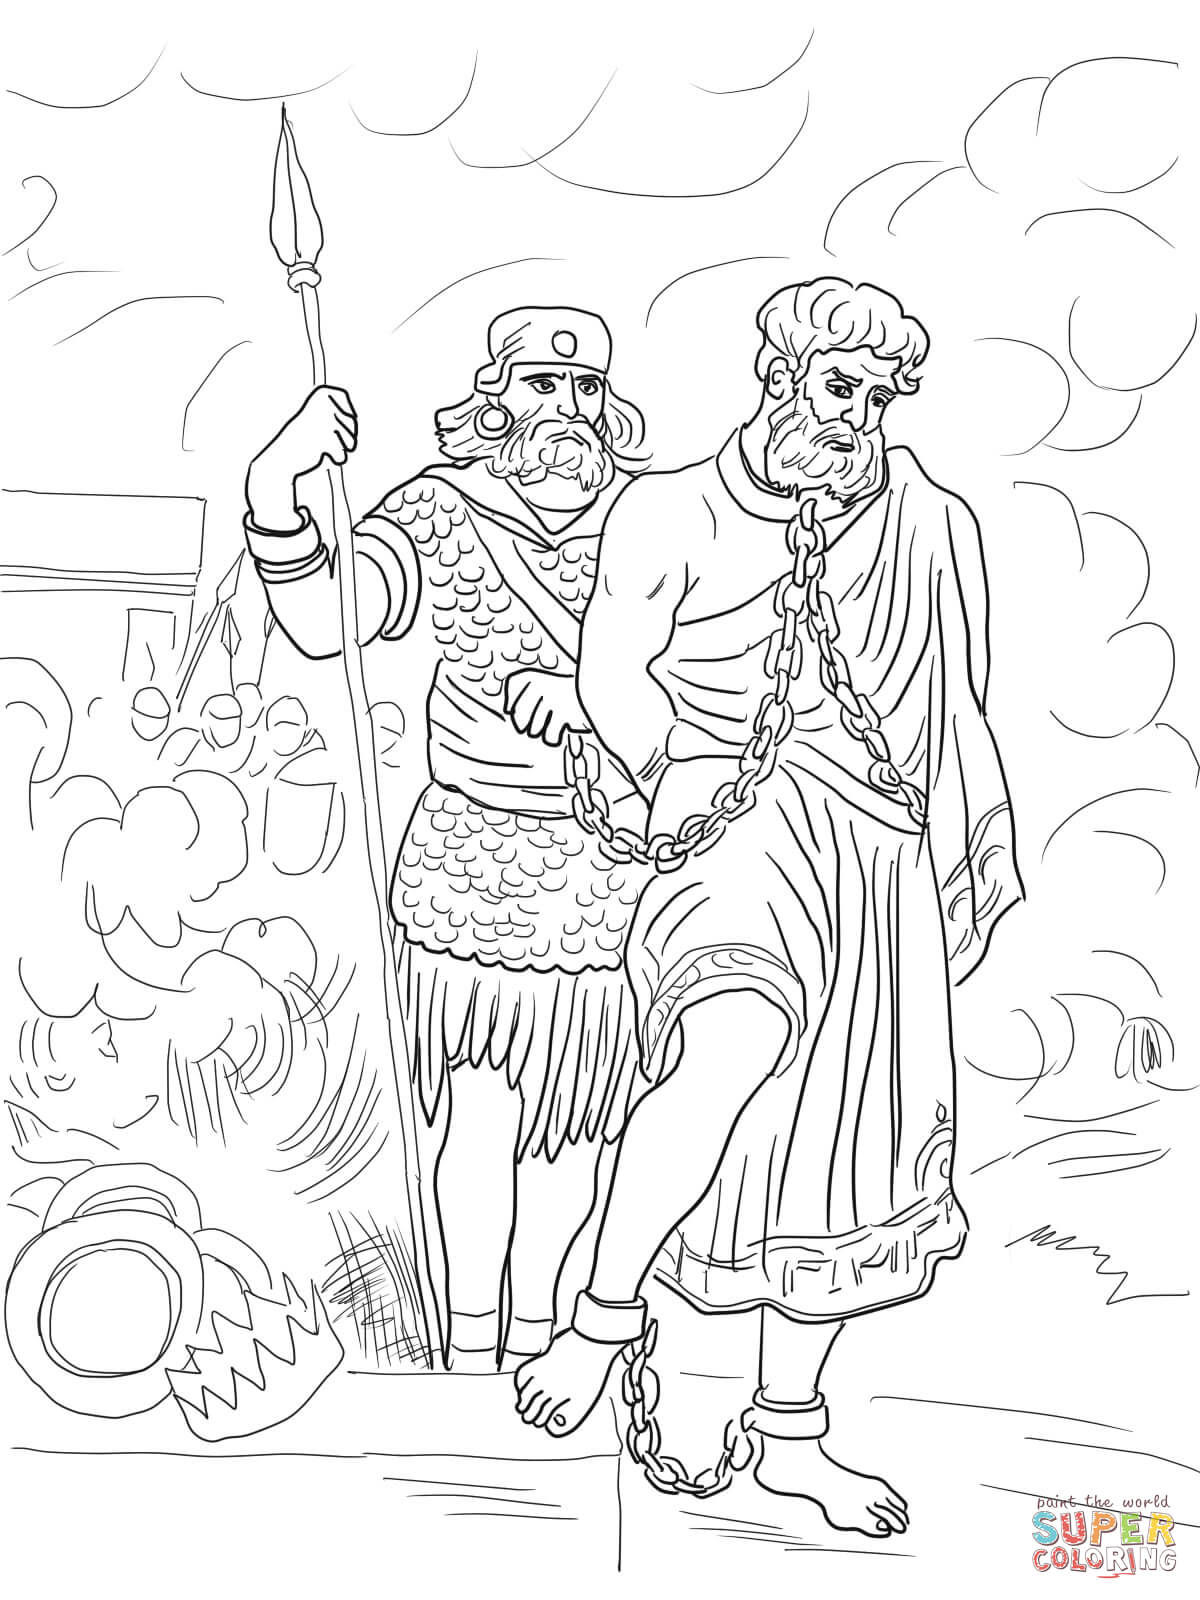 jeremiah images for coloring pages   Prophet Jeremiah Coloring Pages - Coloring Home